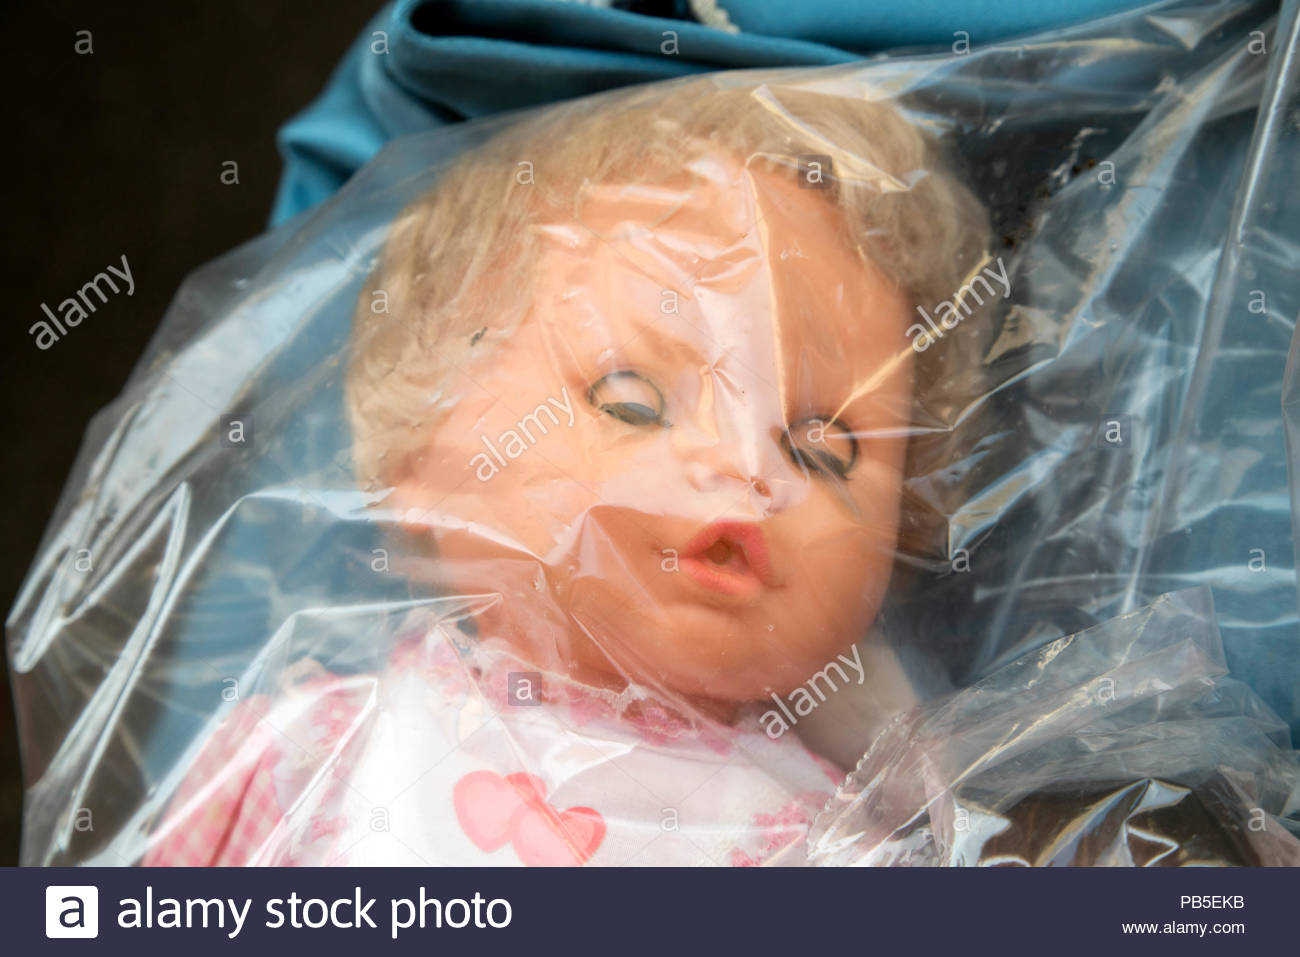 doll in clear plastic bag Stock Photo